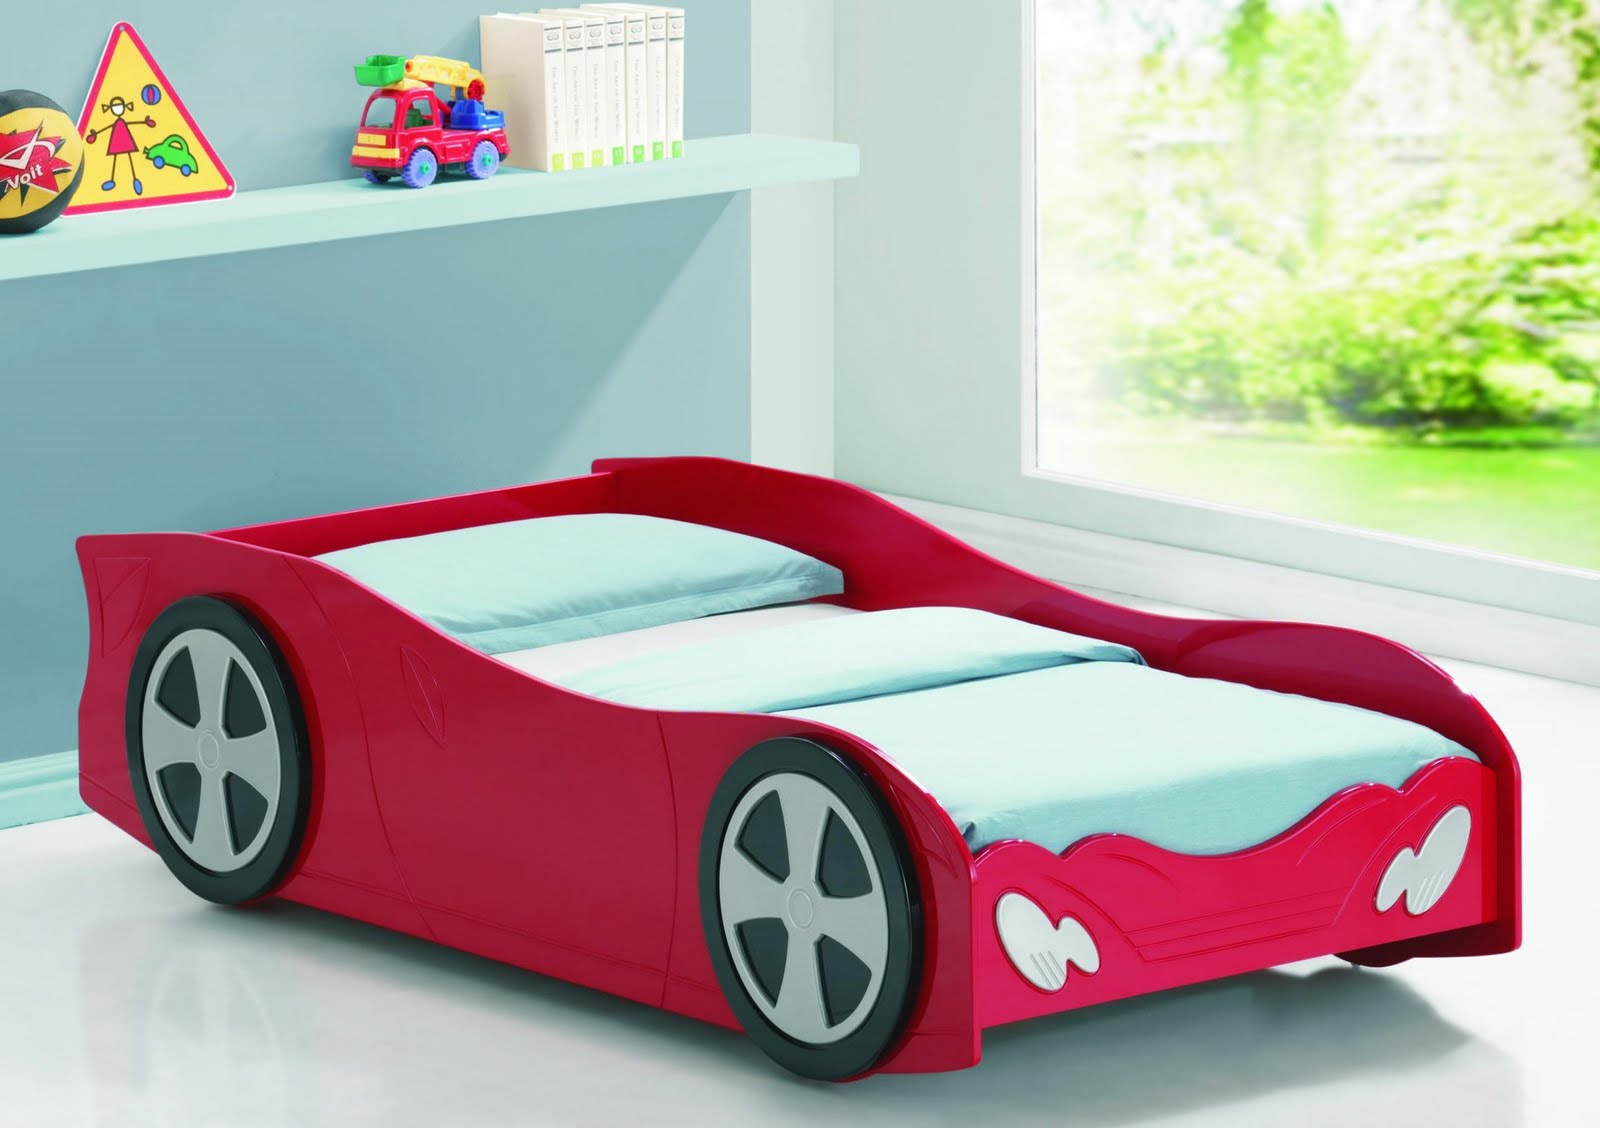 beds with quality at discounted prices kids beds for boys and girls